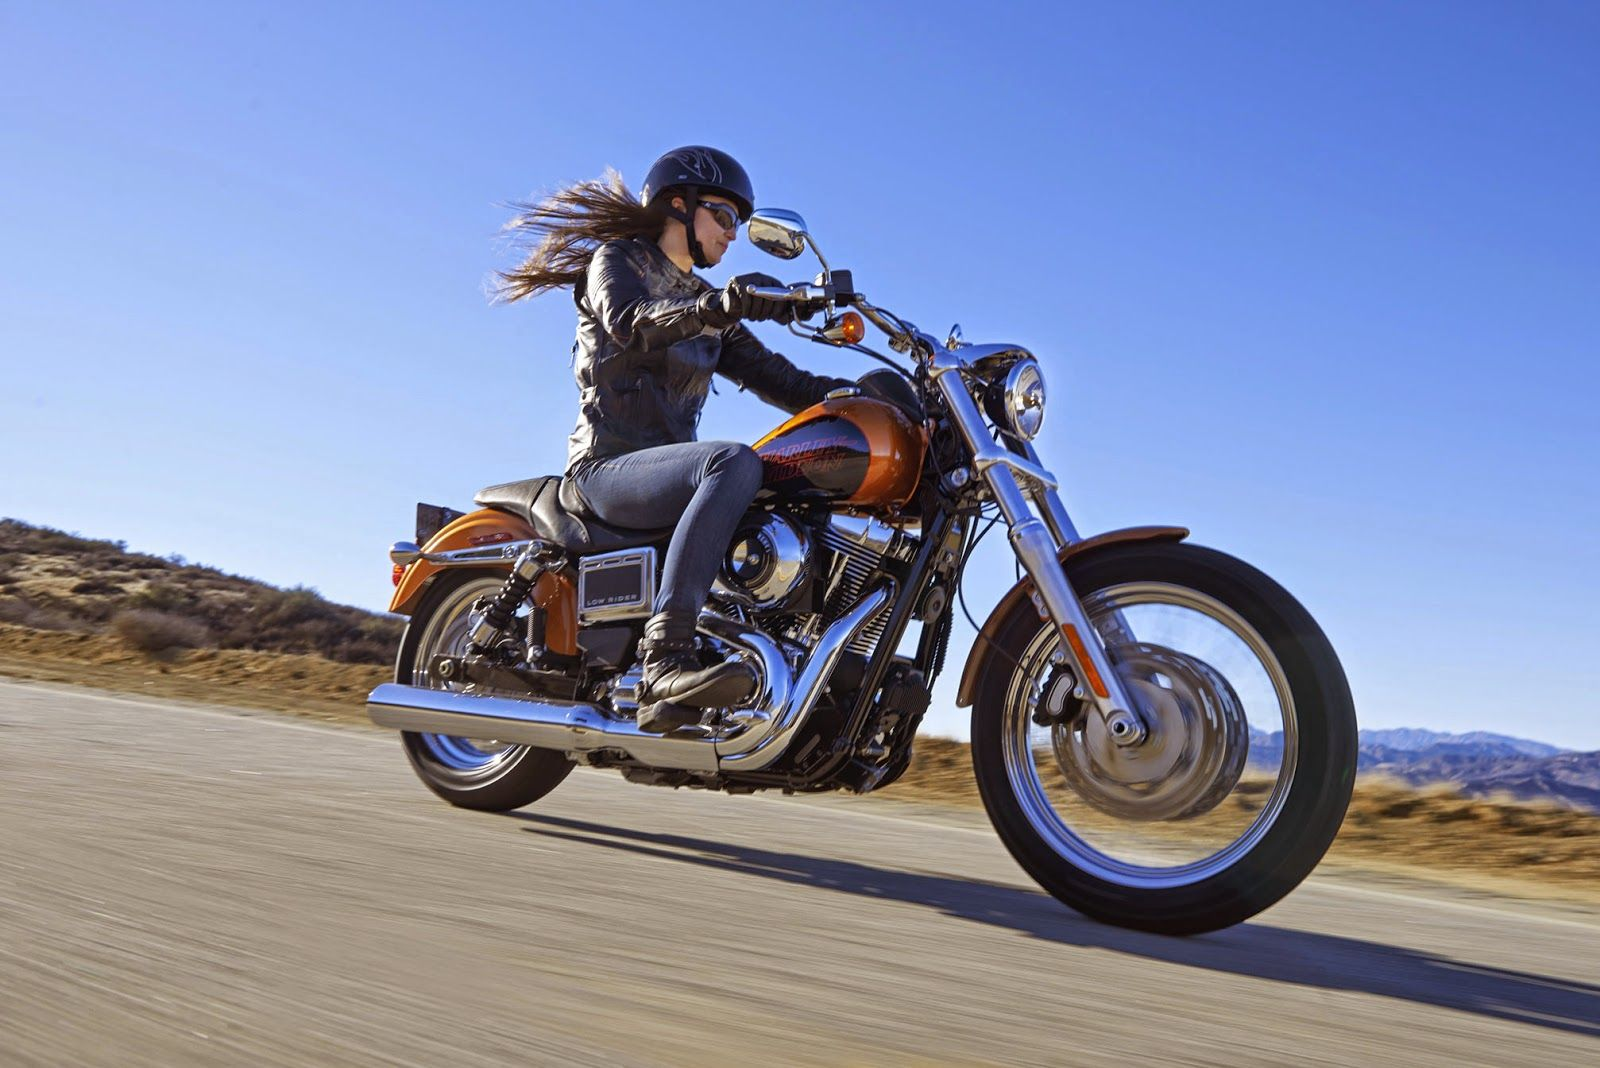 Harley Davidson service manual - Mark's workshop: Harley-Davidson DYNA  Models Workshop Service Repai.